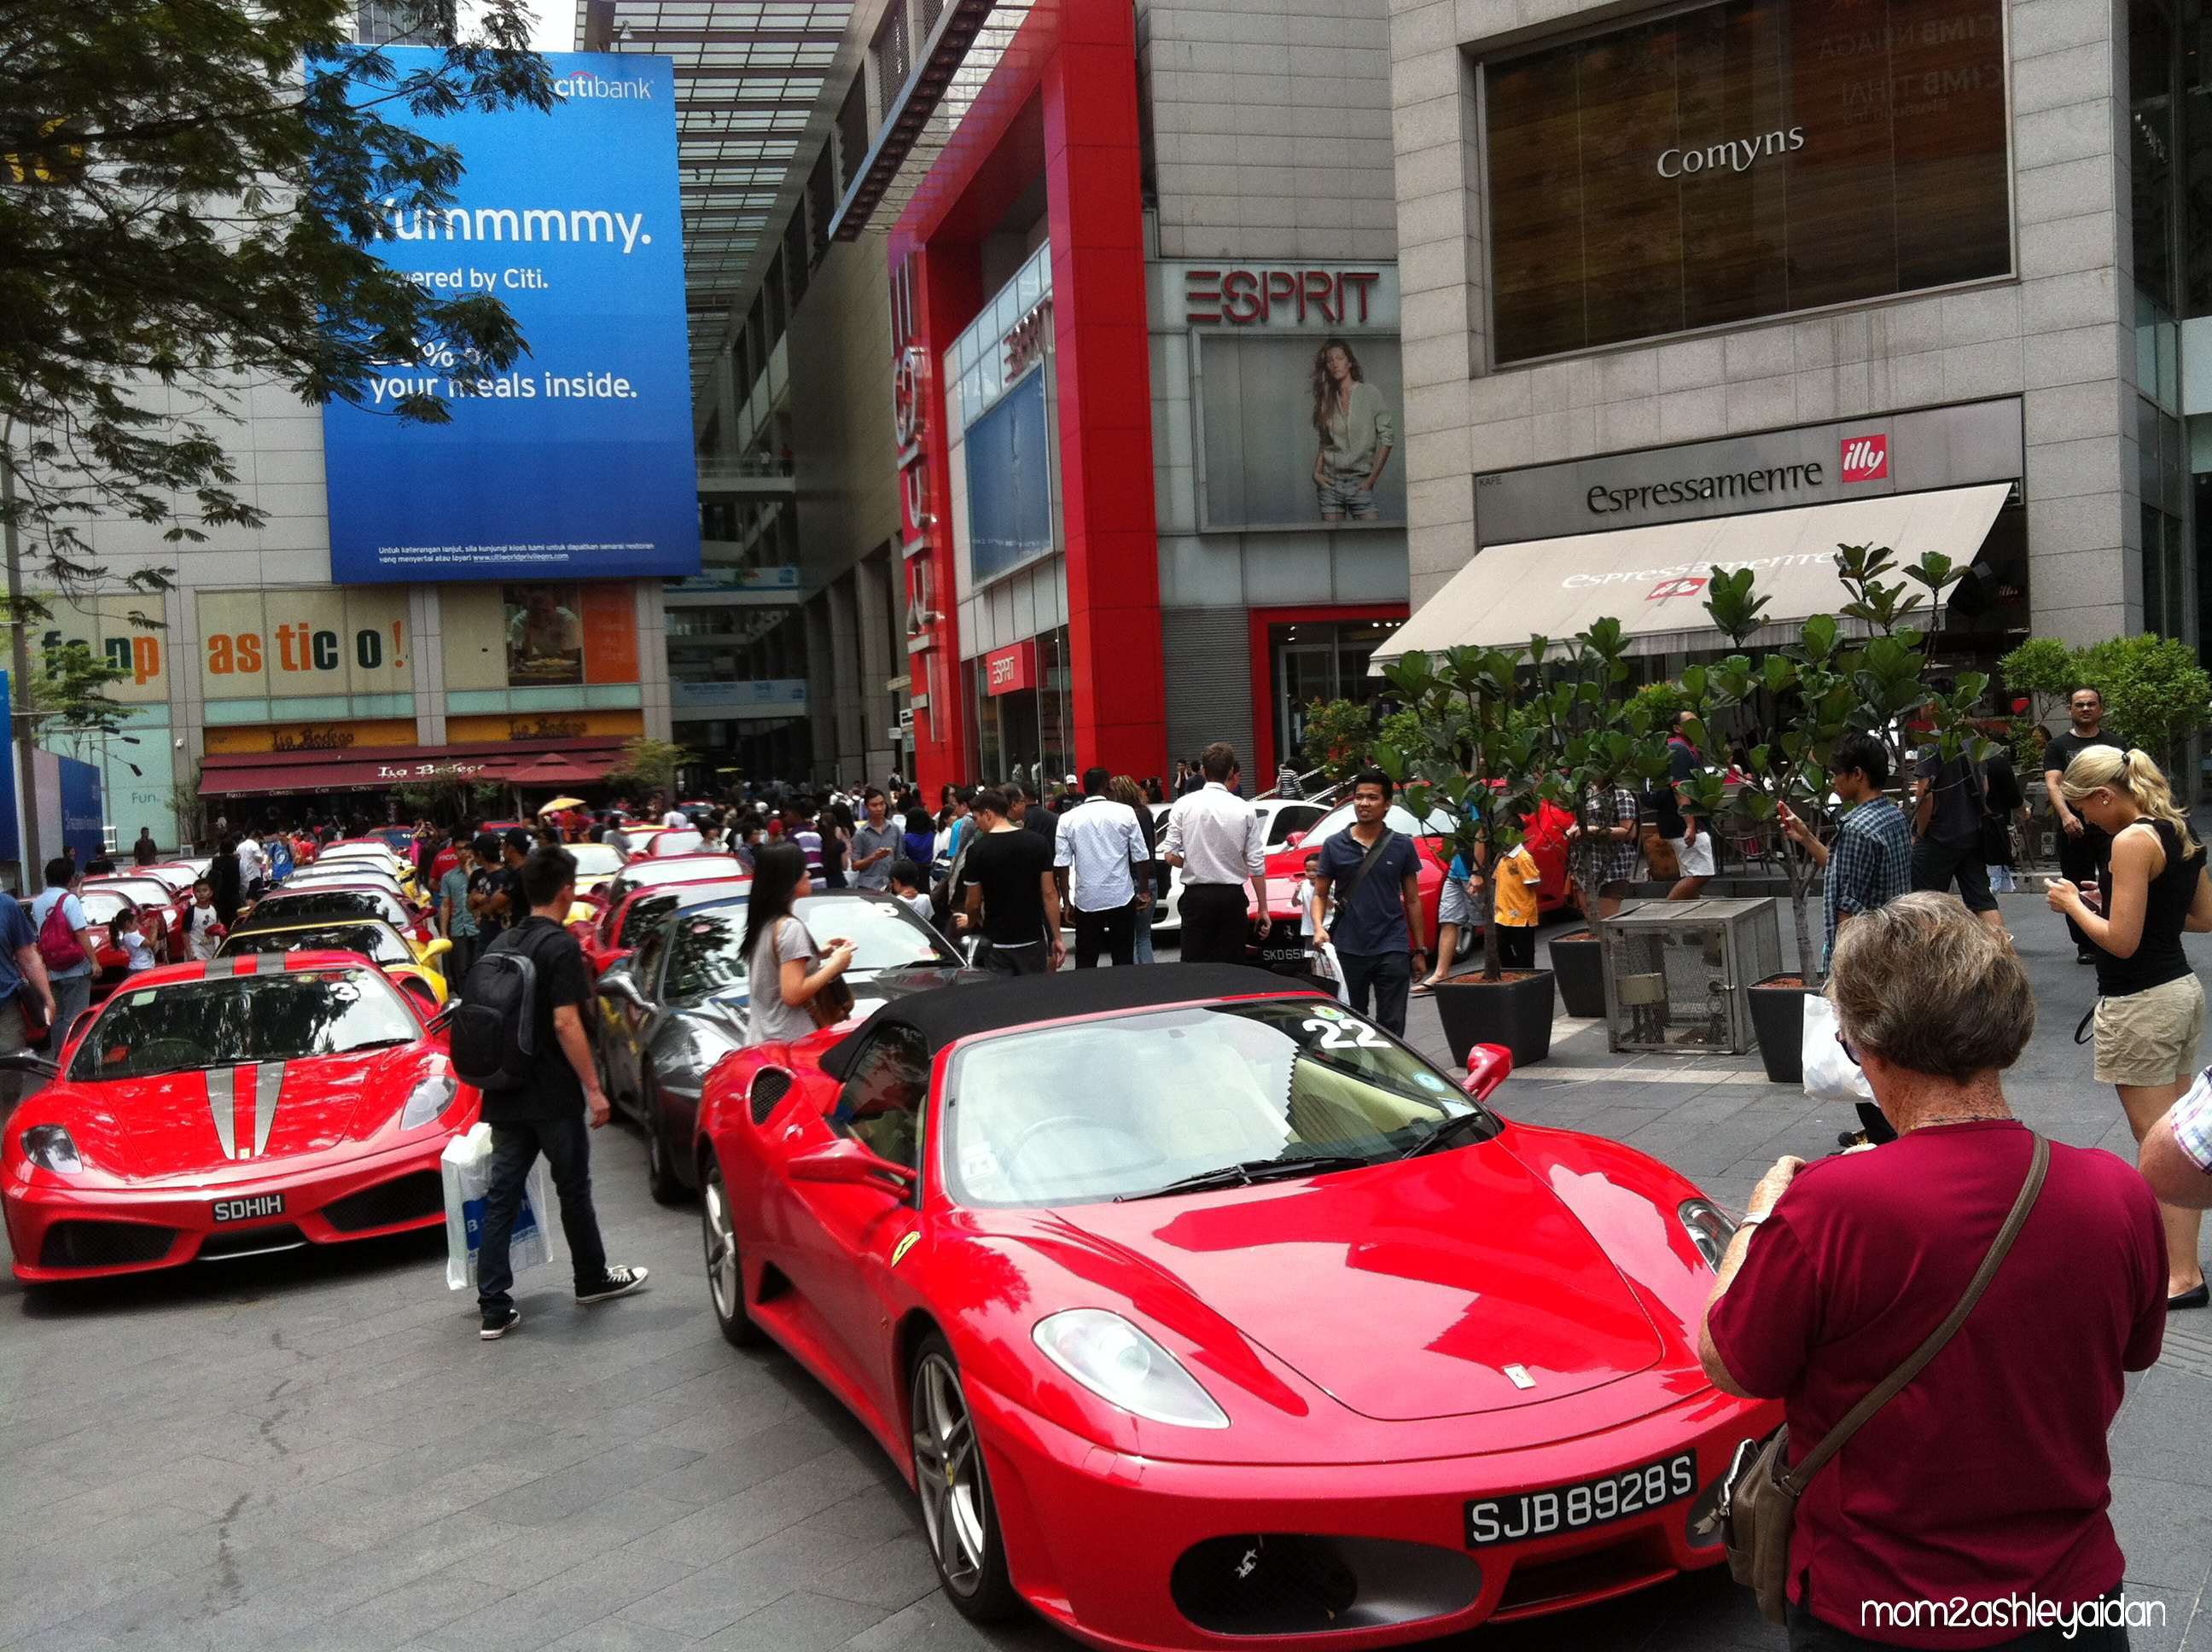 ferrari groupon category there katie abroad travel went hollywood